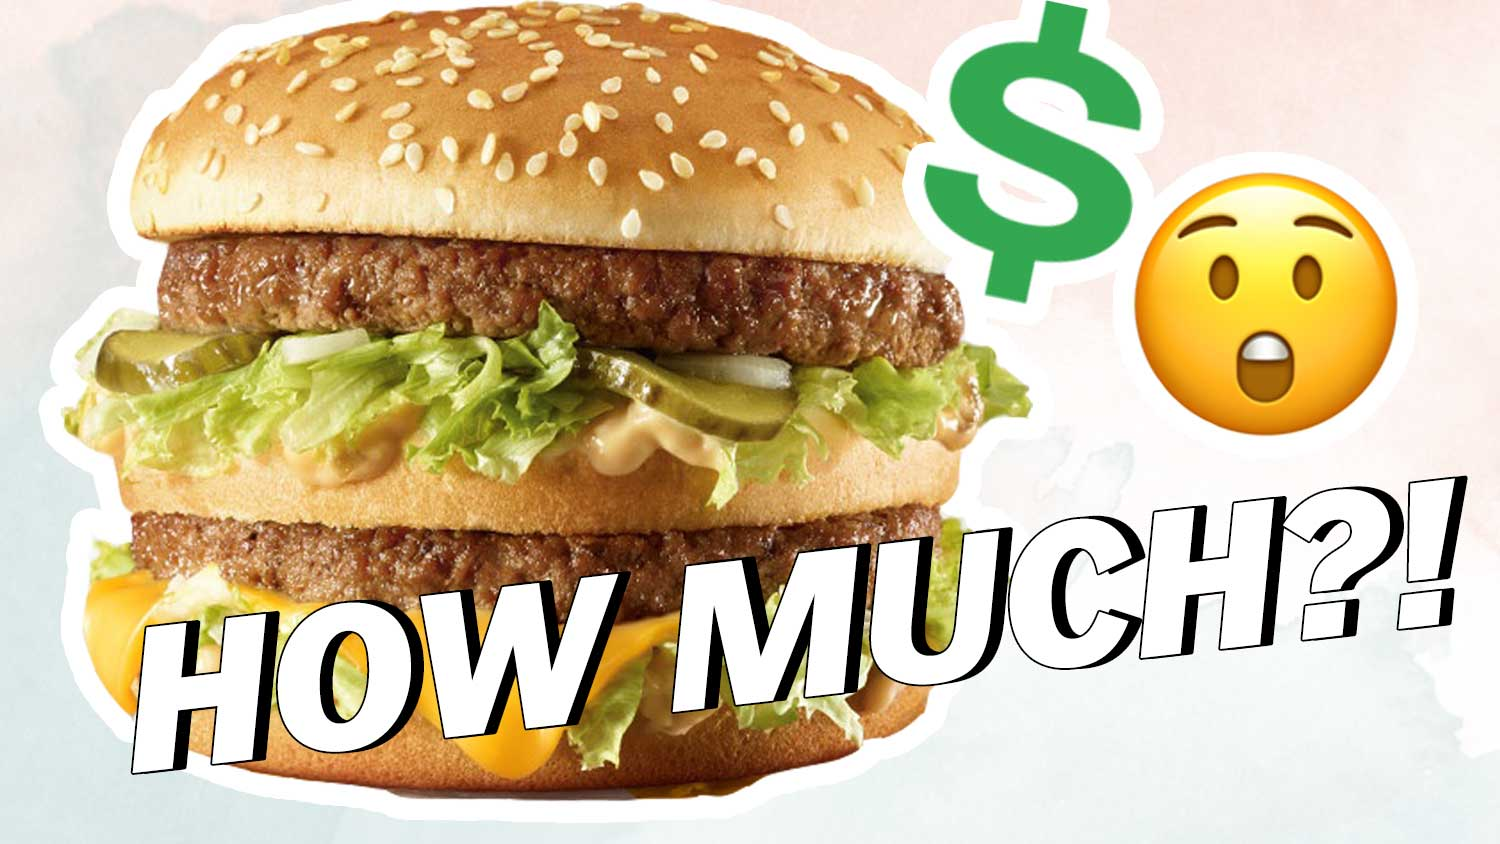 What's The Real Cost Of A Burger?